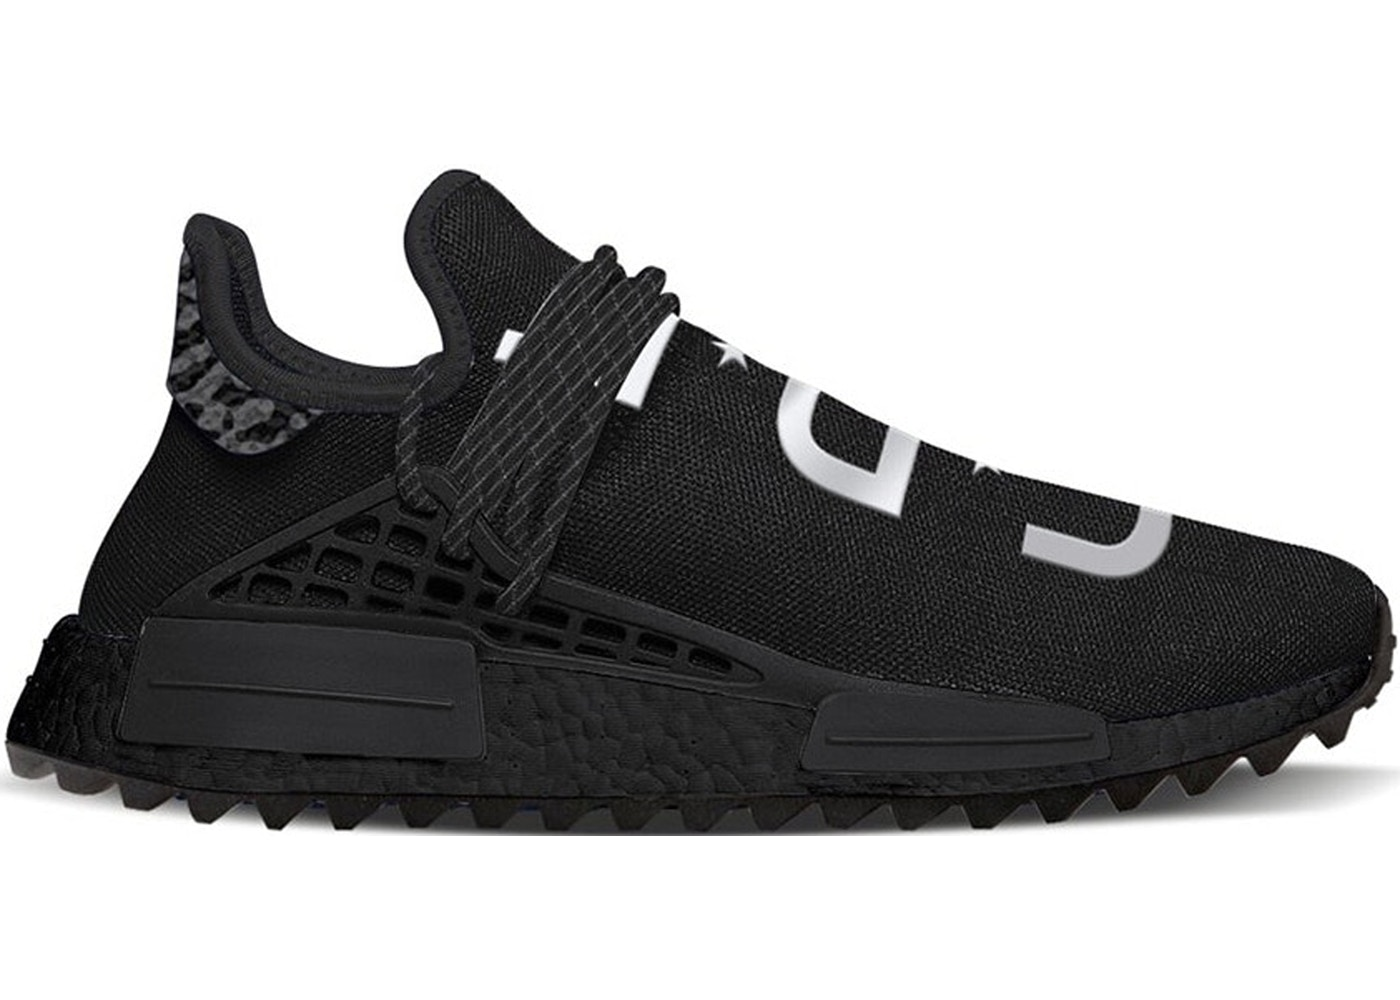 https://stockx.imgix.net/Adidas-Human-Race-NMD-Pharrell-You-Nerd.png?fit=fill&bg=FFFFFF&w=700&h=500&auto=format,compress&q=90&dpr=2&trim=color